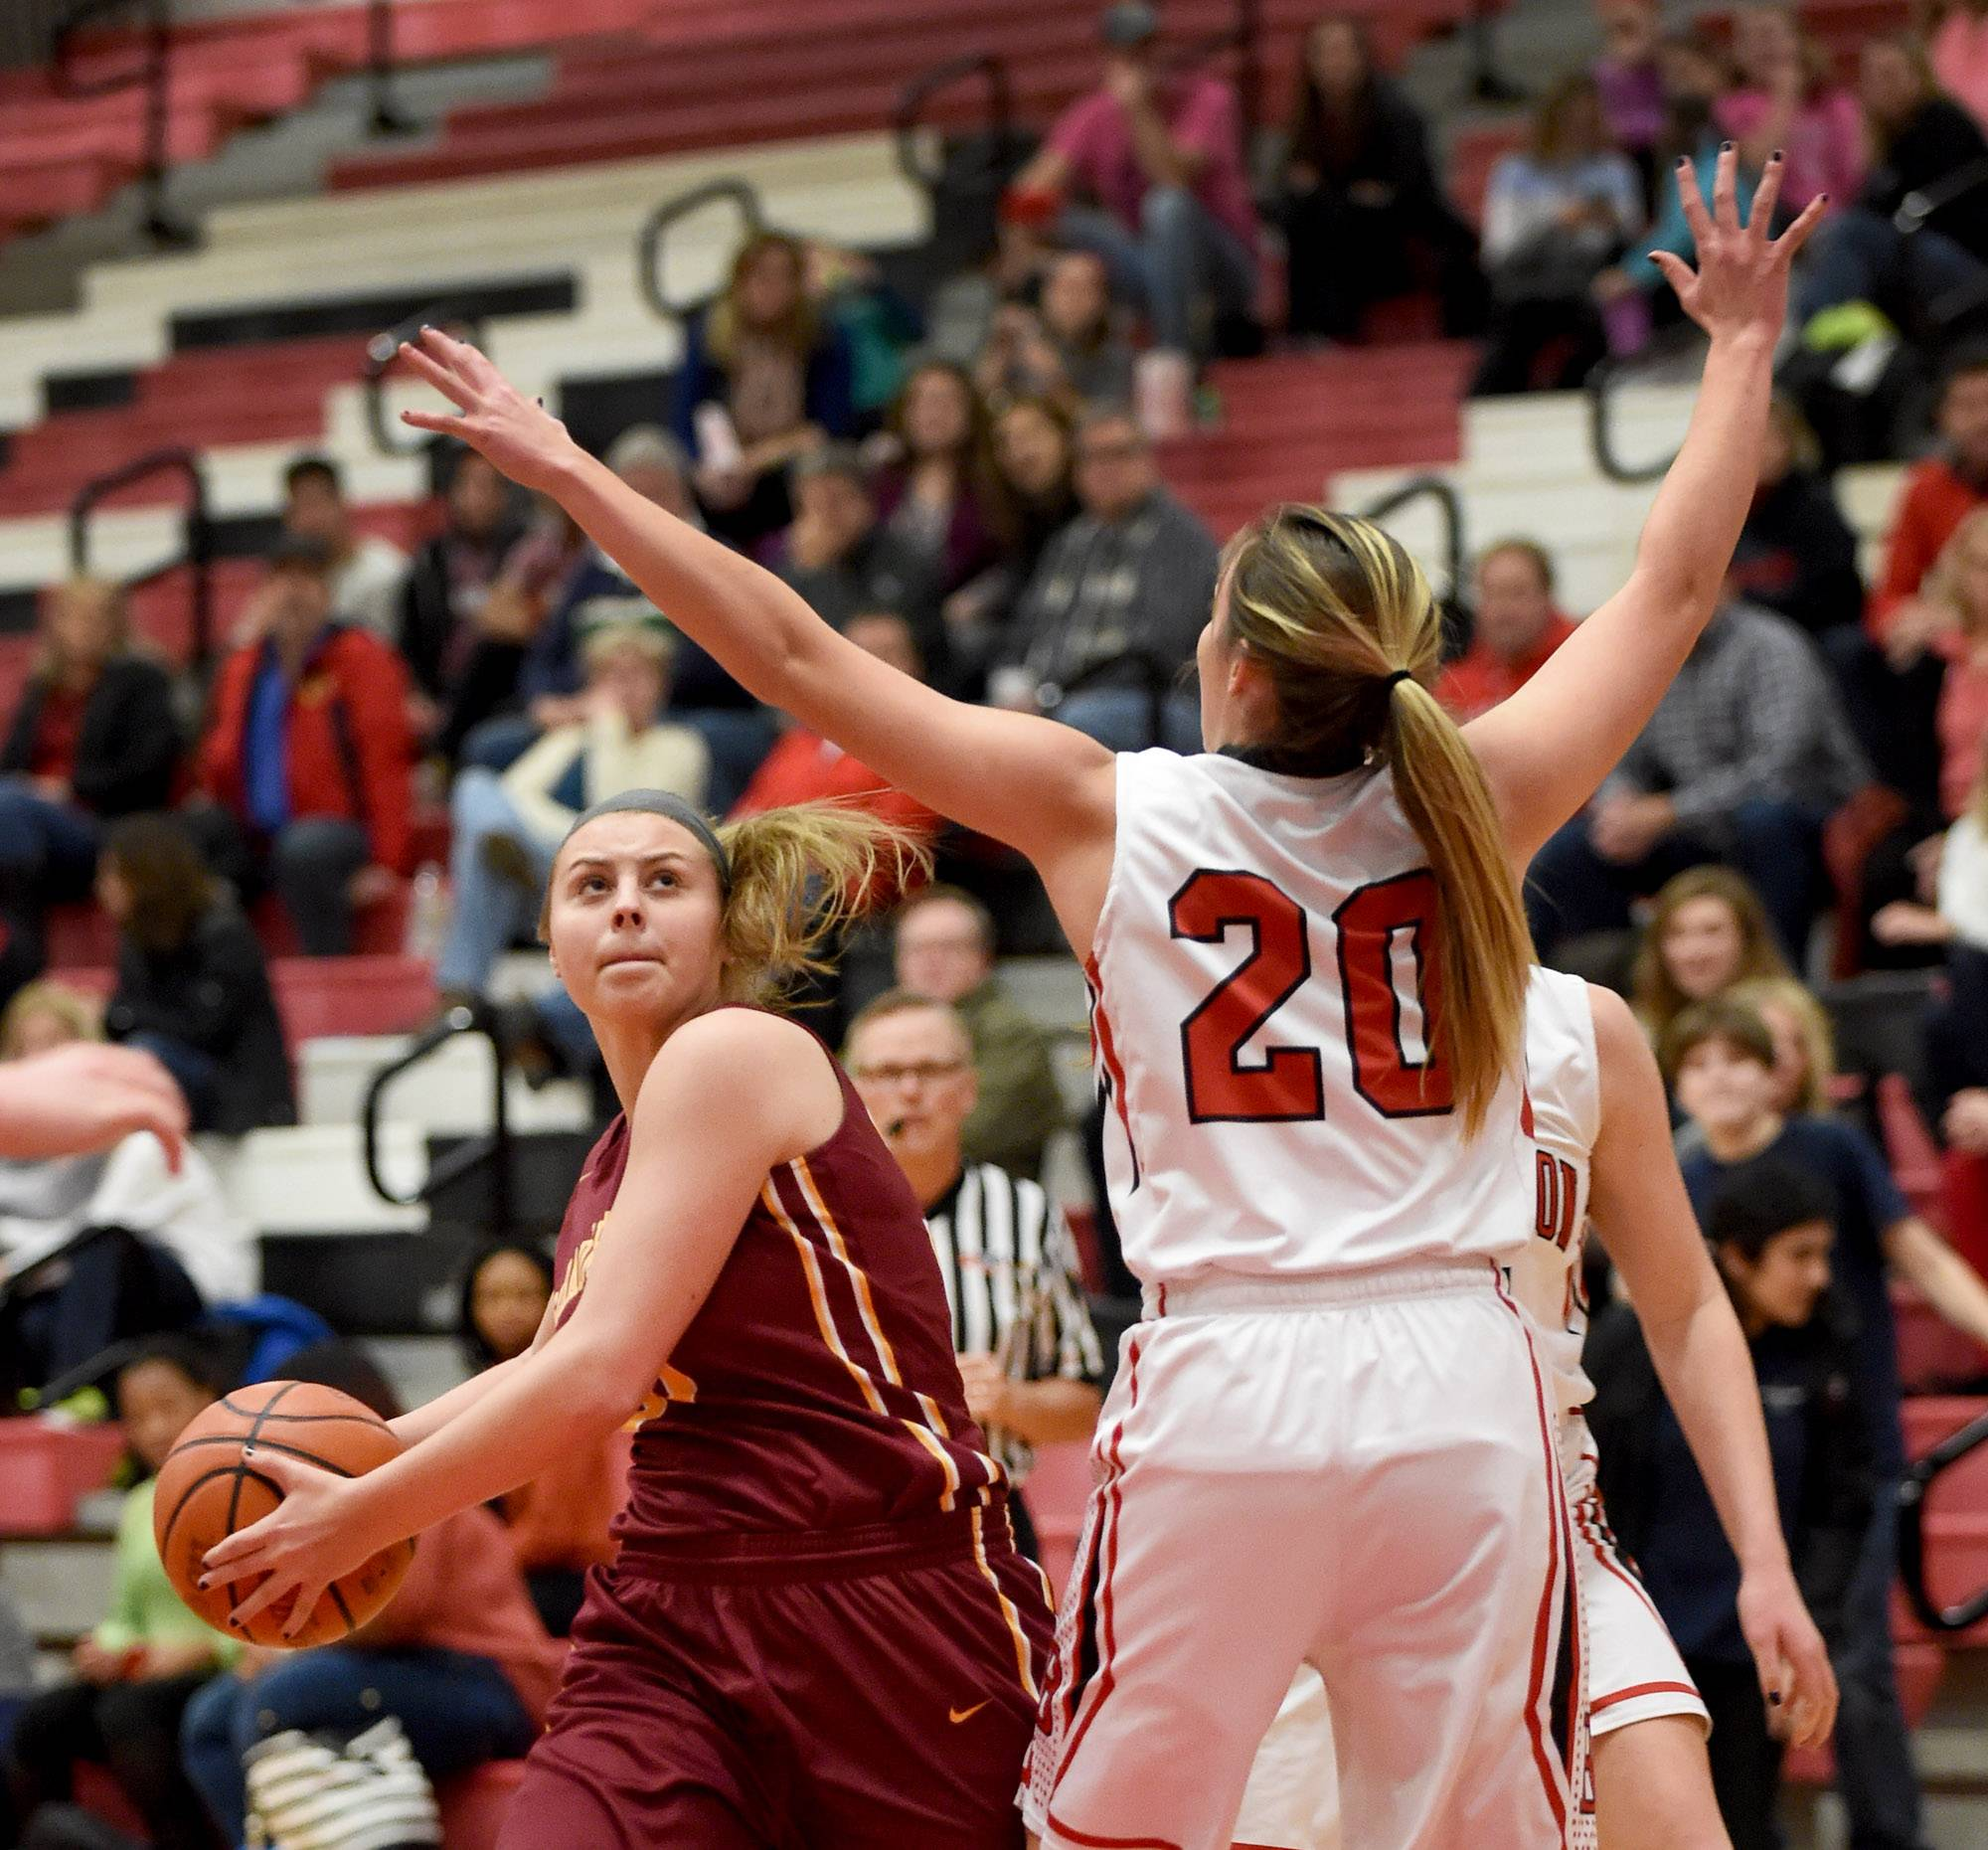 Barrington's Tori Meyer (20) defends against Schaumburg's Mallory Gerber (33) as she zig-zags to the hoop Friday at Barrington.